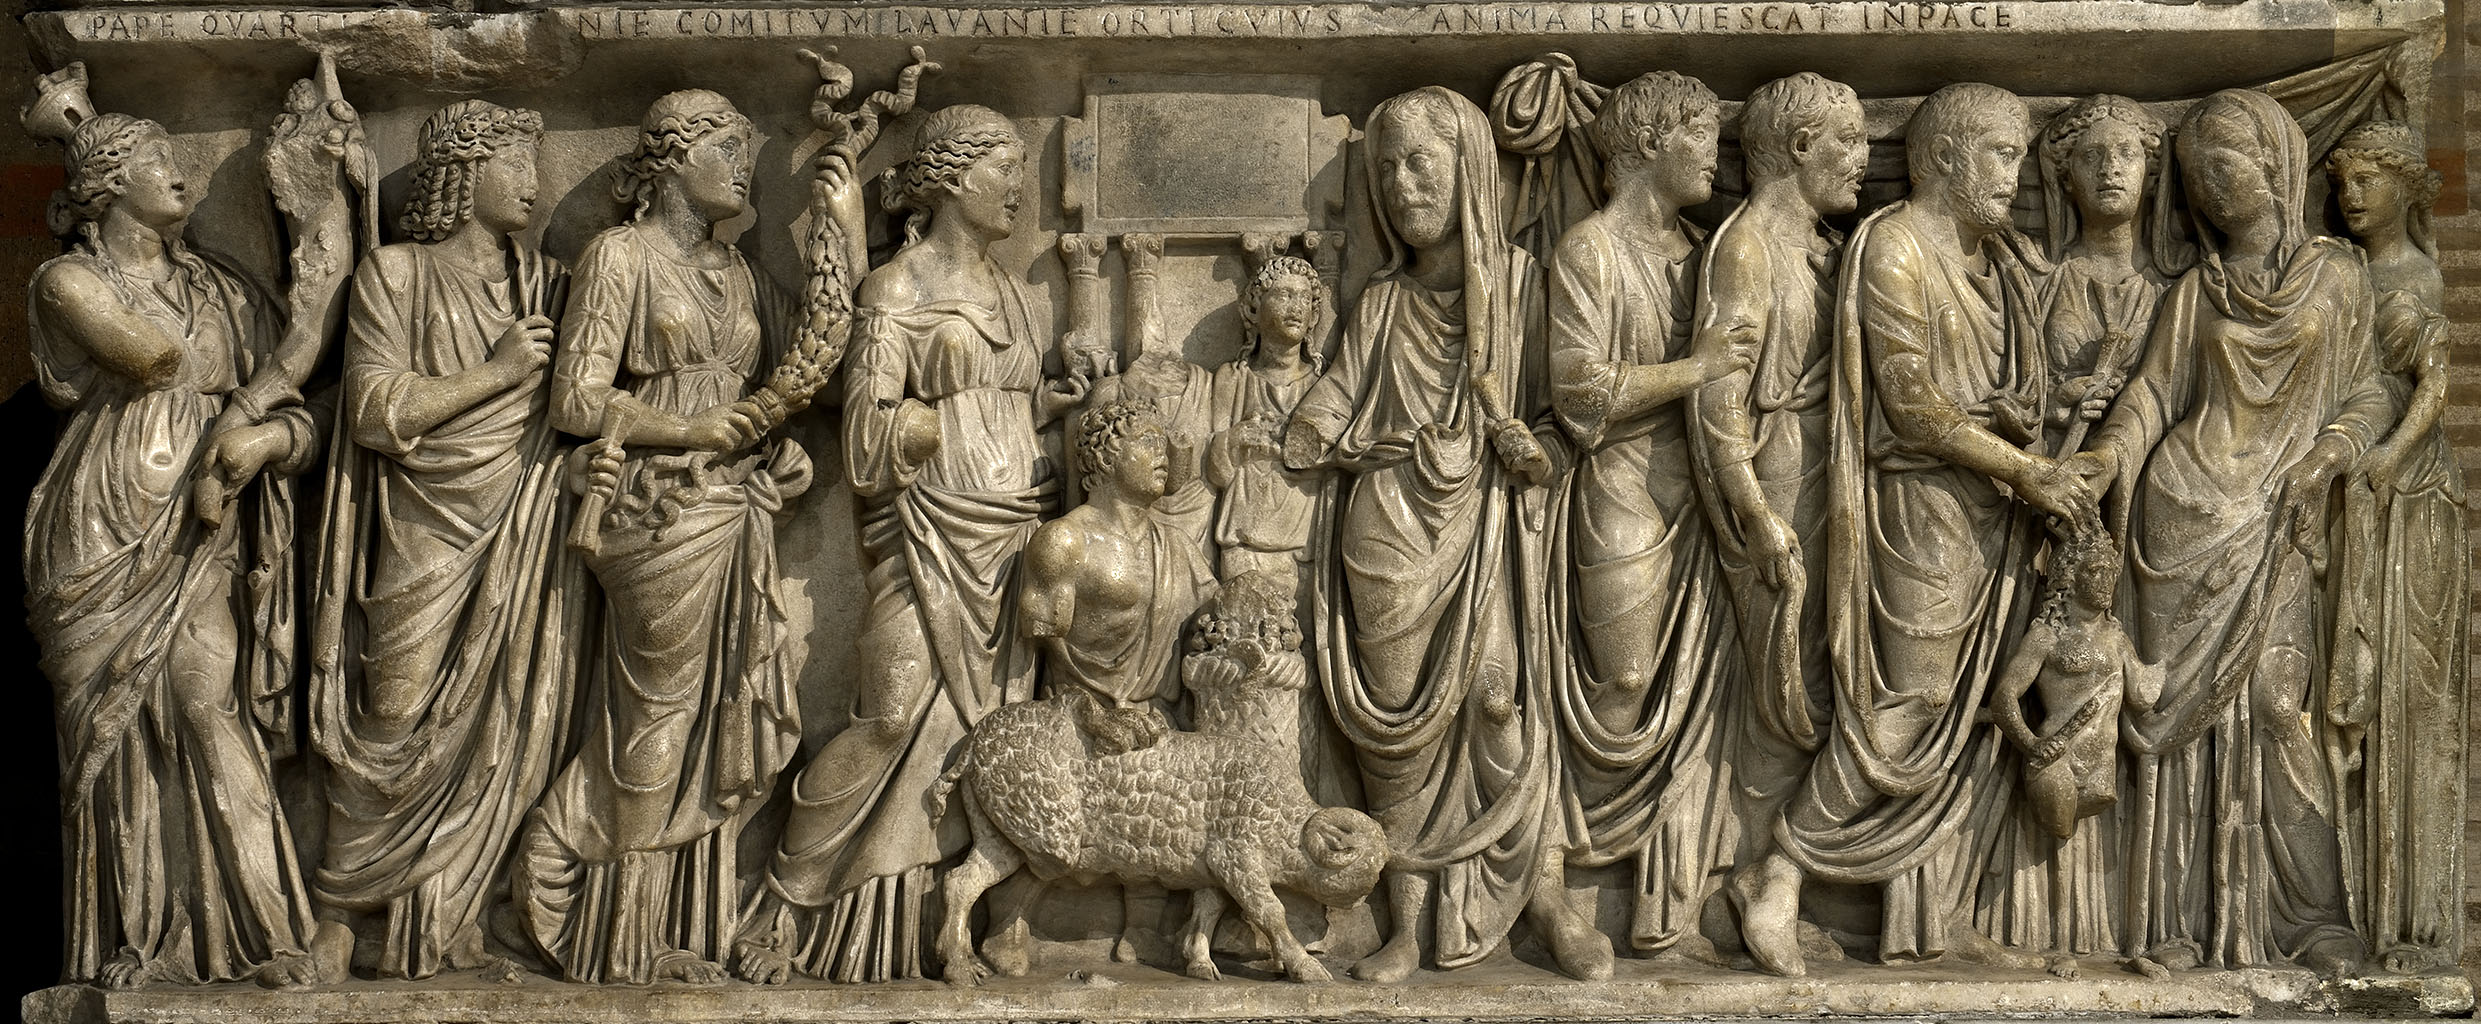 Marriage sarcophagus (known as sarcophagus of cardinal Guglielmo Fieschi. Front panel with wedding scenes. Marble. Ca. 210-220 CE. Rome, Basilica di San Lorenzo fuori le Mura